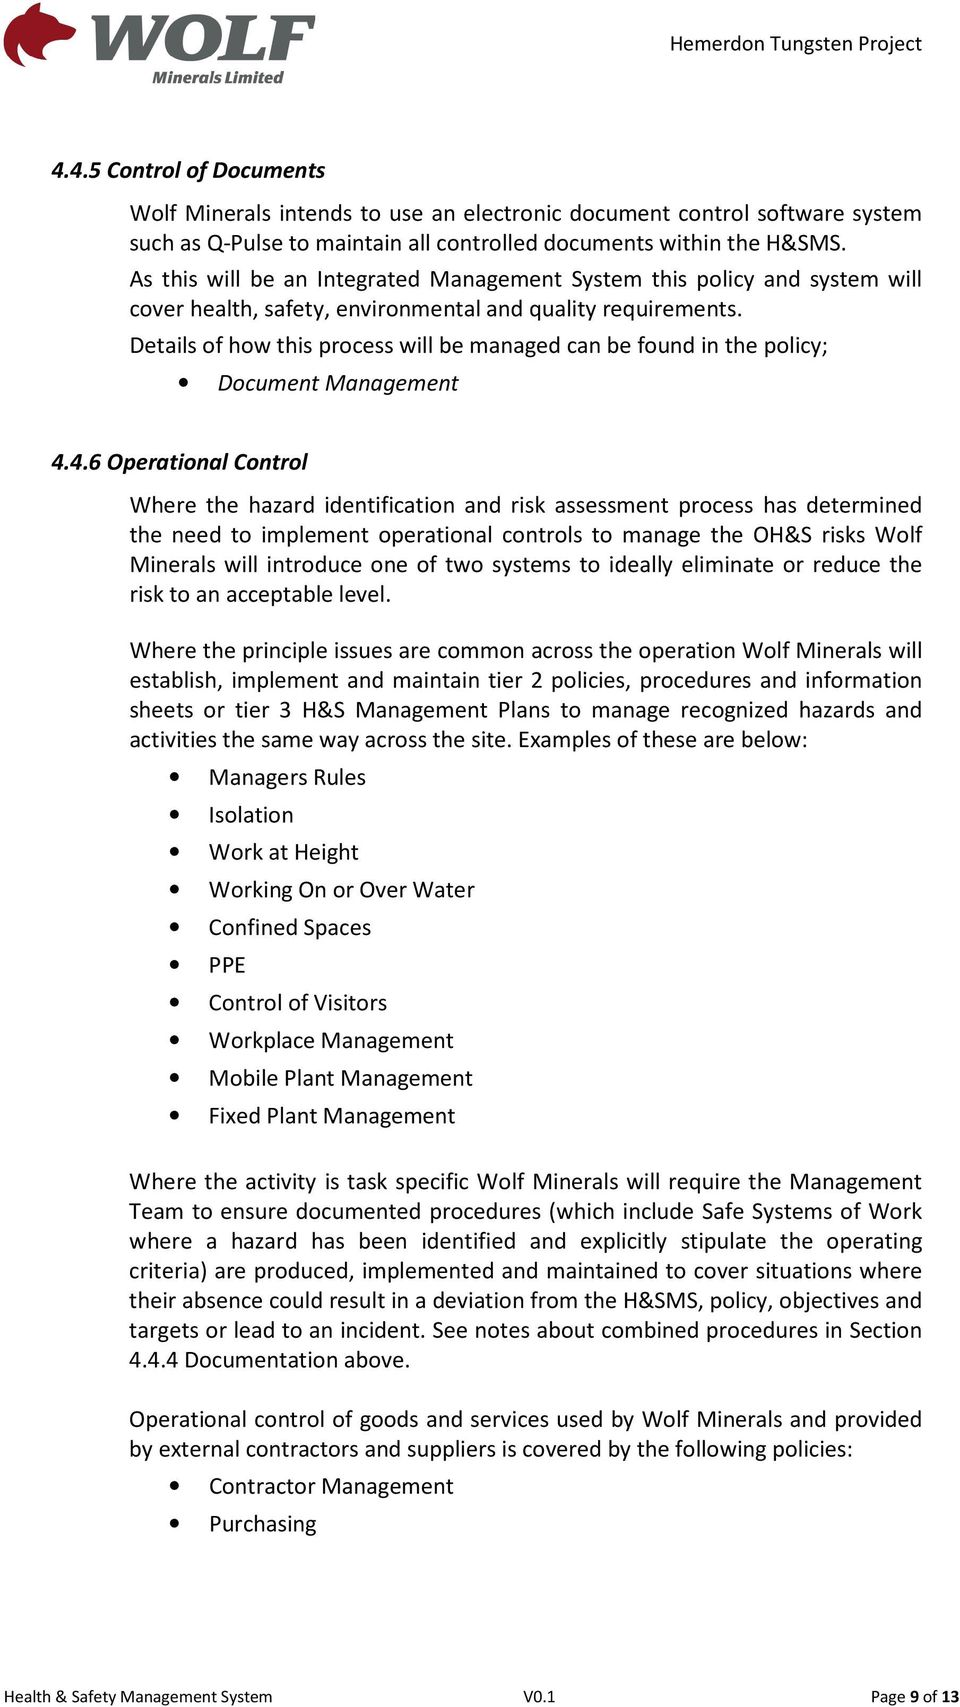 Health & Safety Management System Manual - PDF